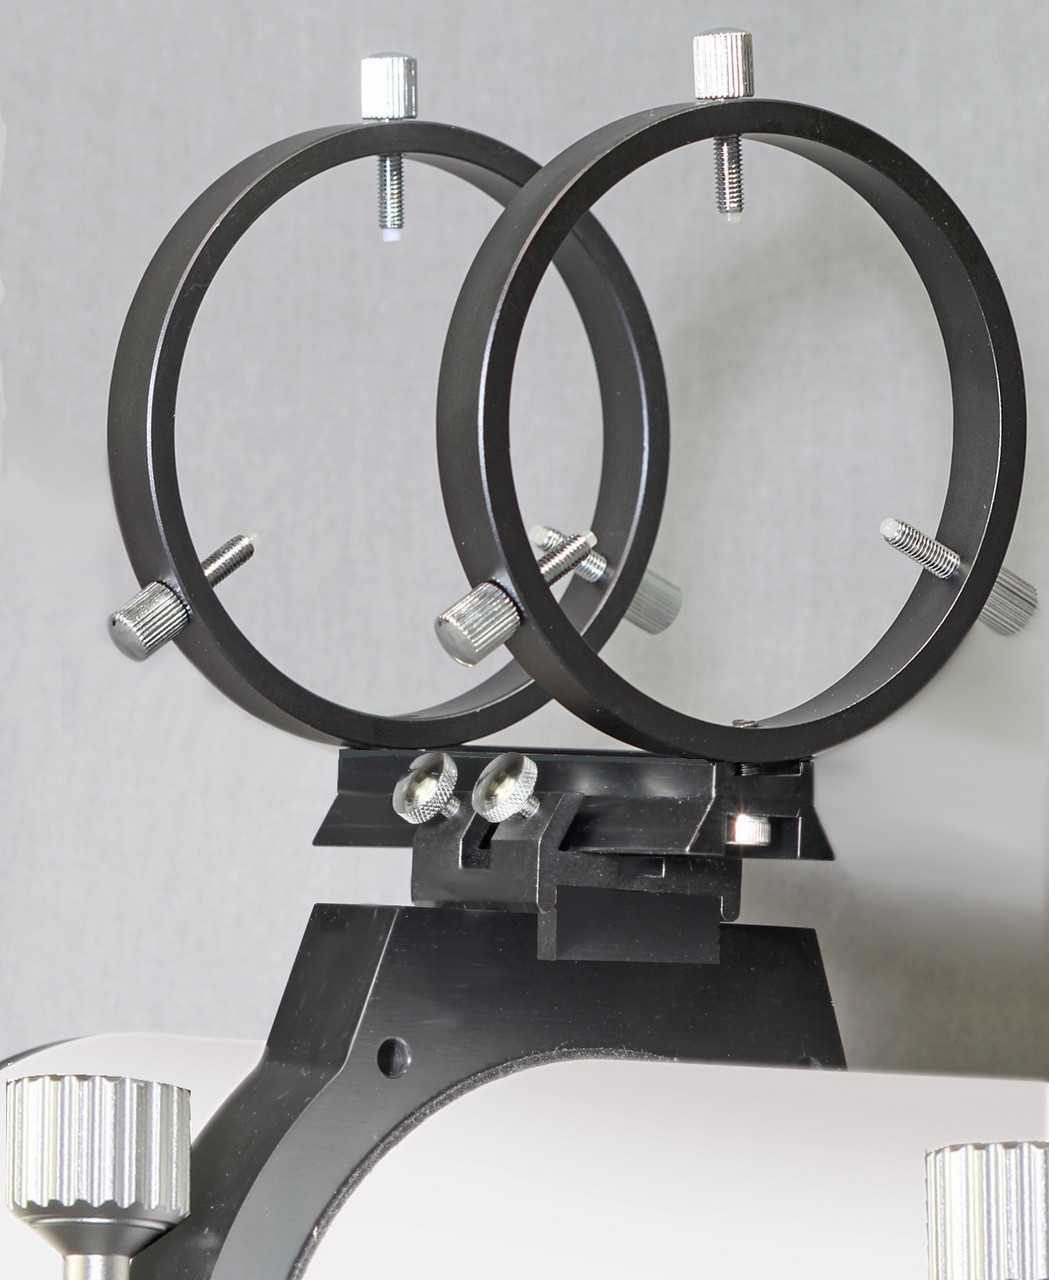 R080ET rings for mounting the Stellarvue 80 mm finder scope to hinged rings